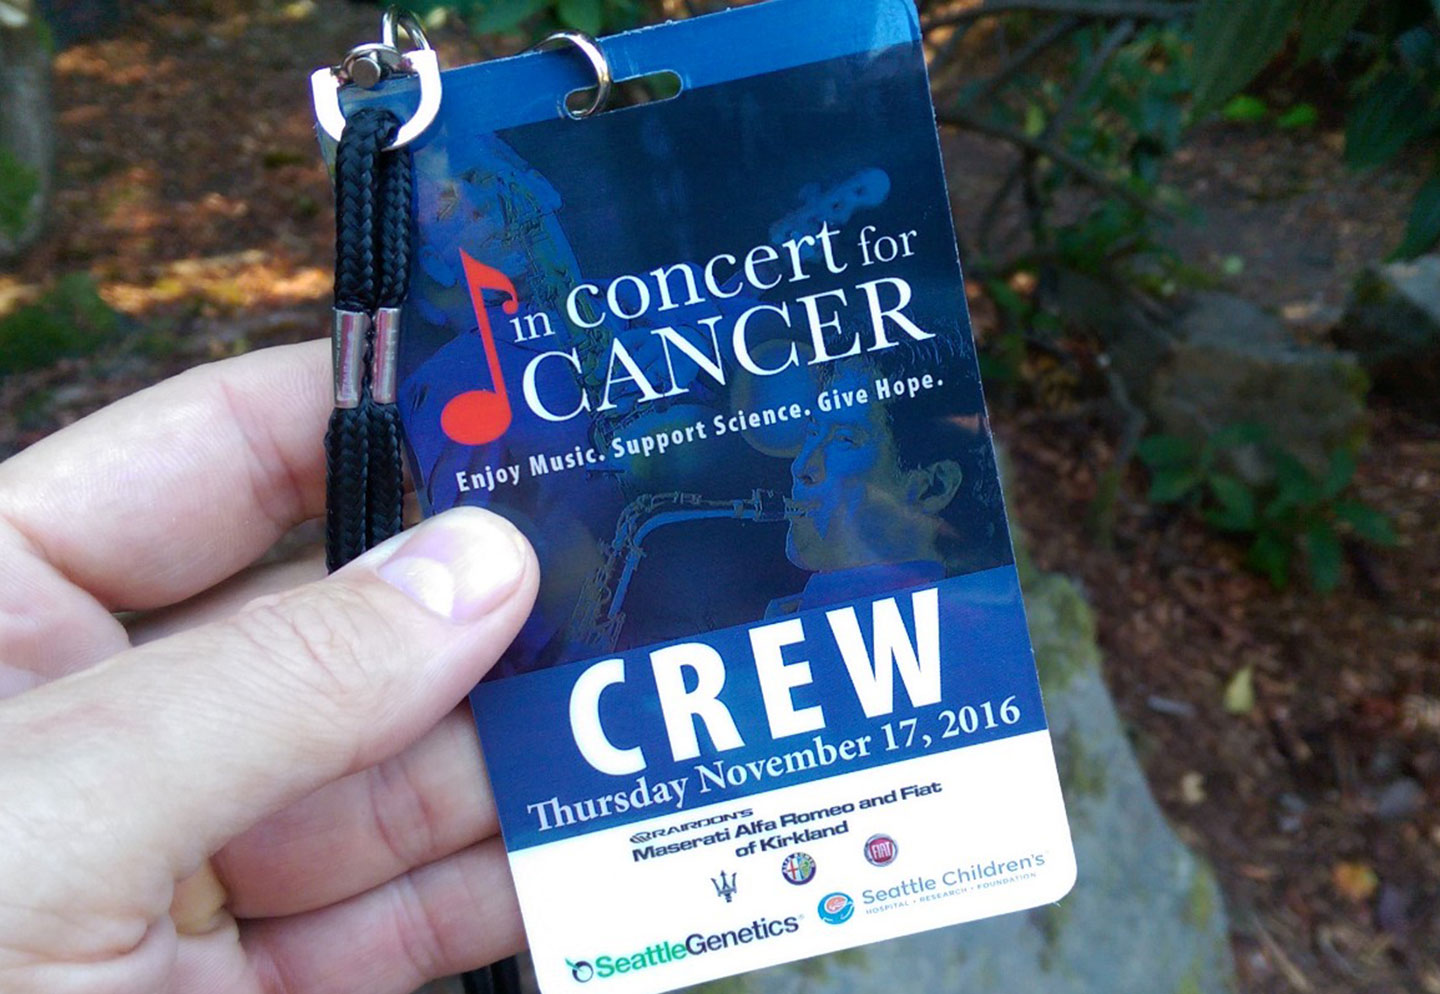 Concert promotion and marketing materials for In Concert for Cancer